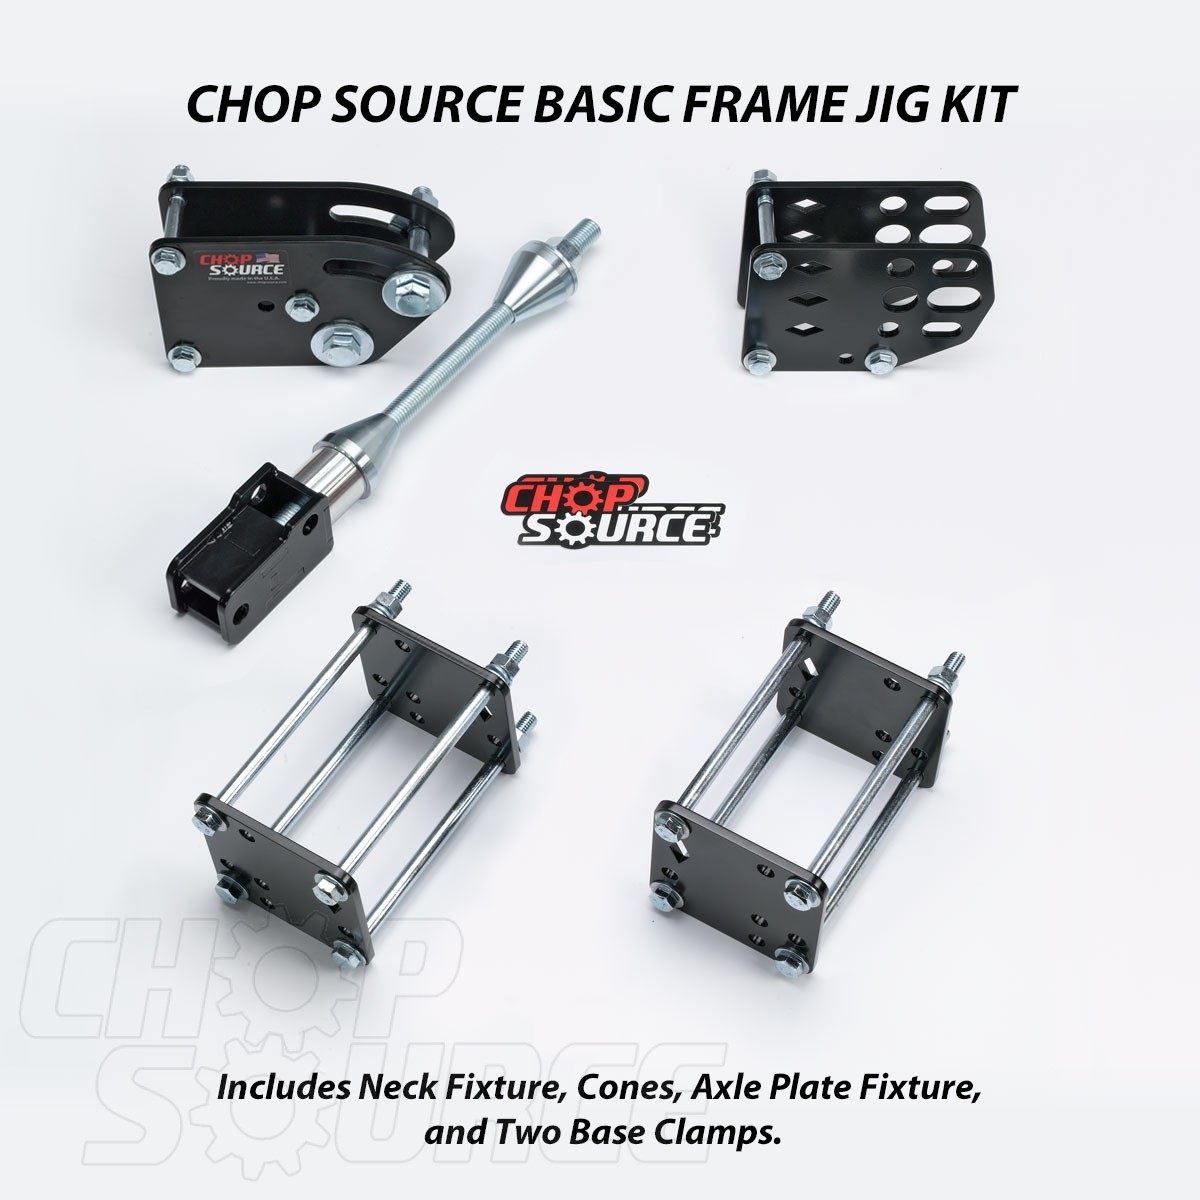 Chop Source Motorcycle Frame Jig Kit - Basic